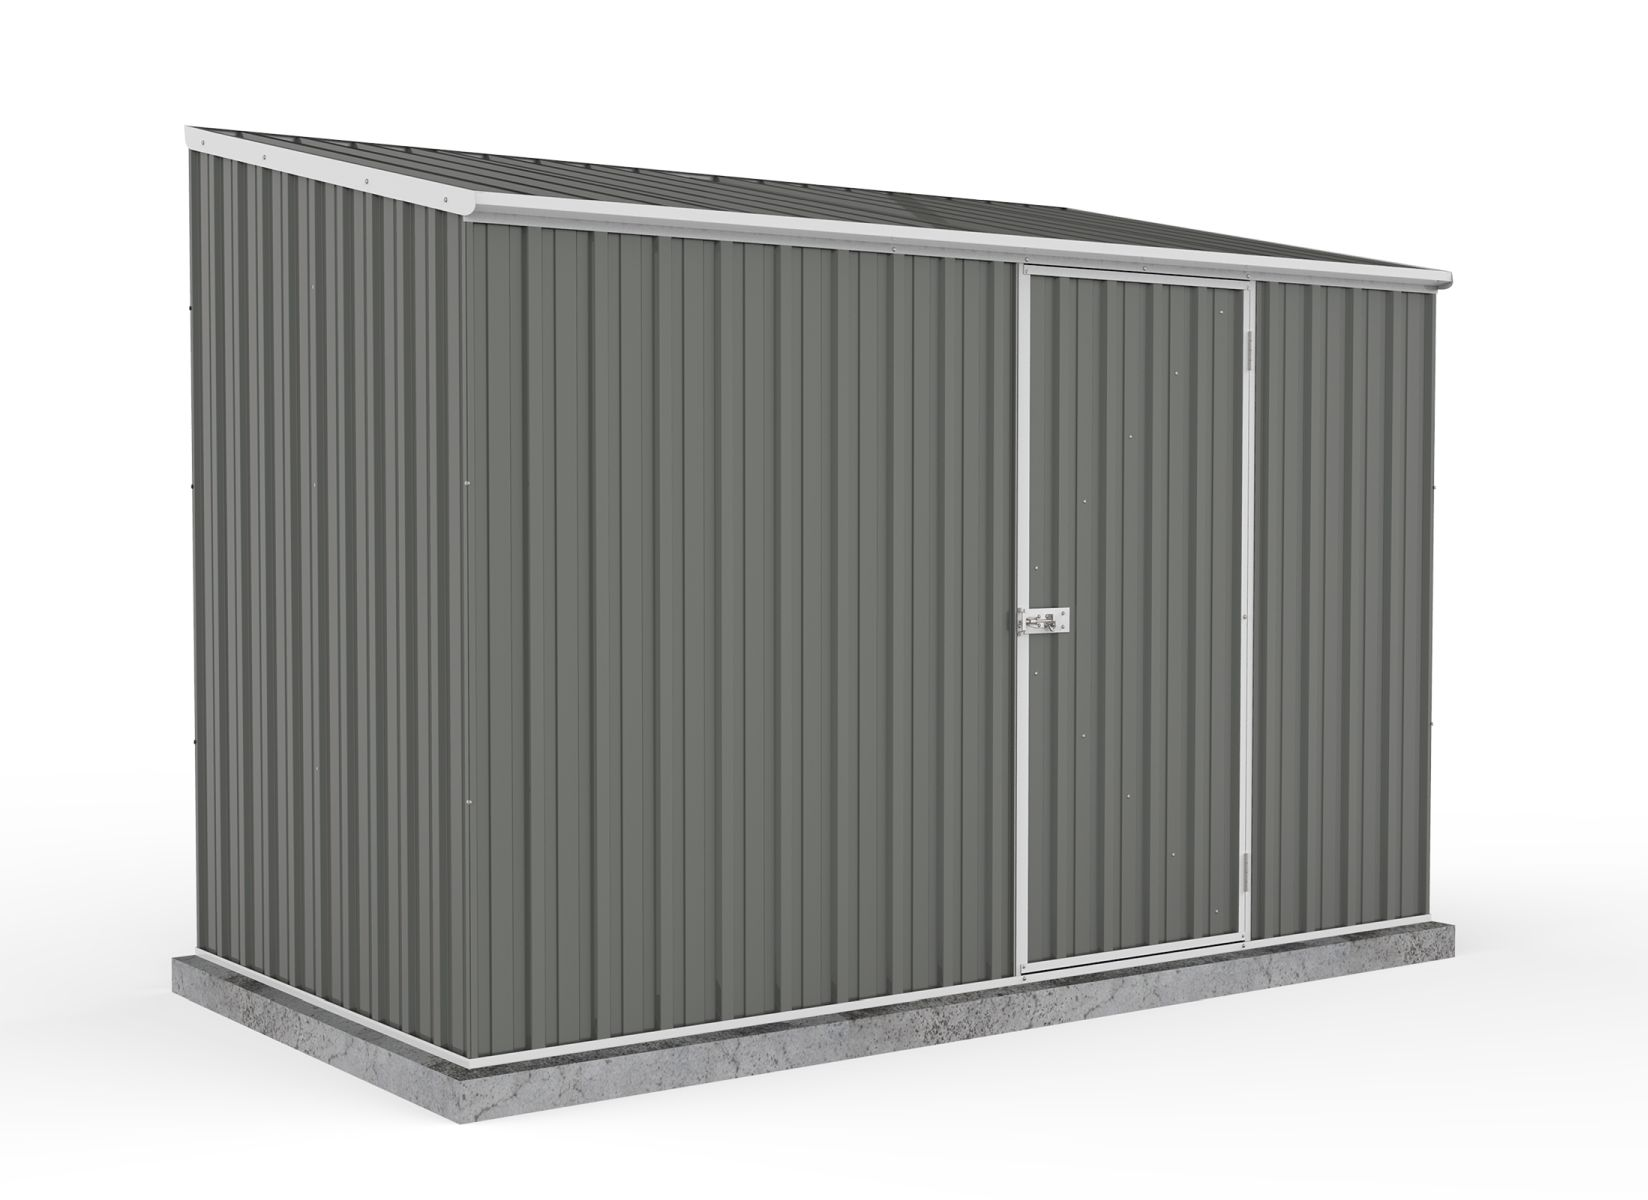 Absco Space Saver Shed Woodland Grey 3.00 x 1.52 x 2.08m